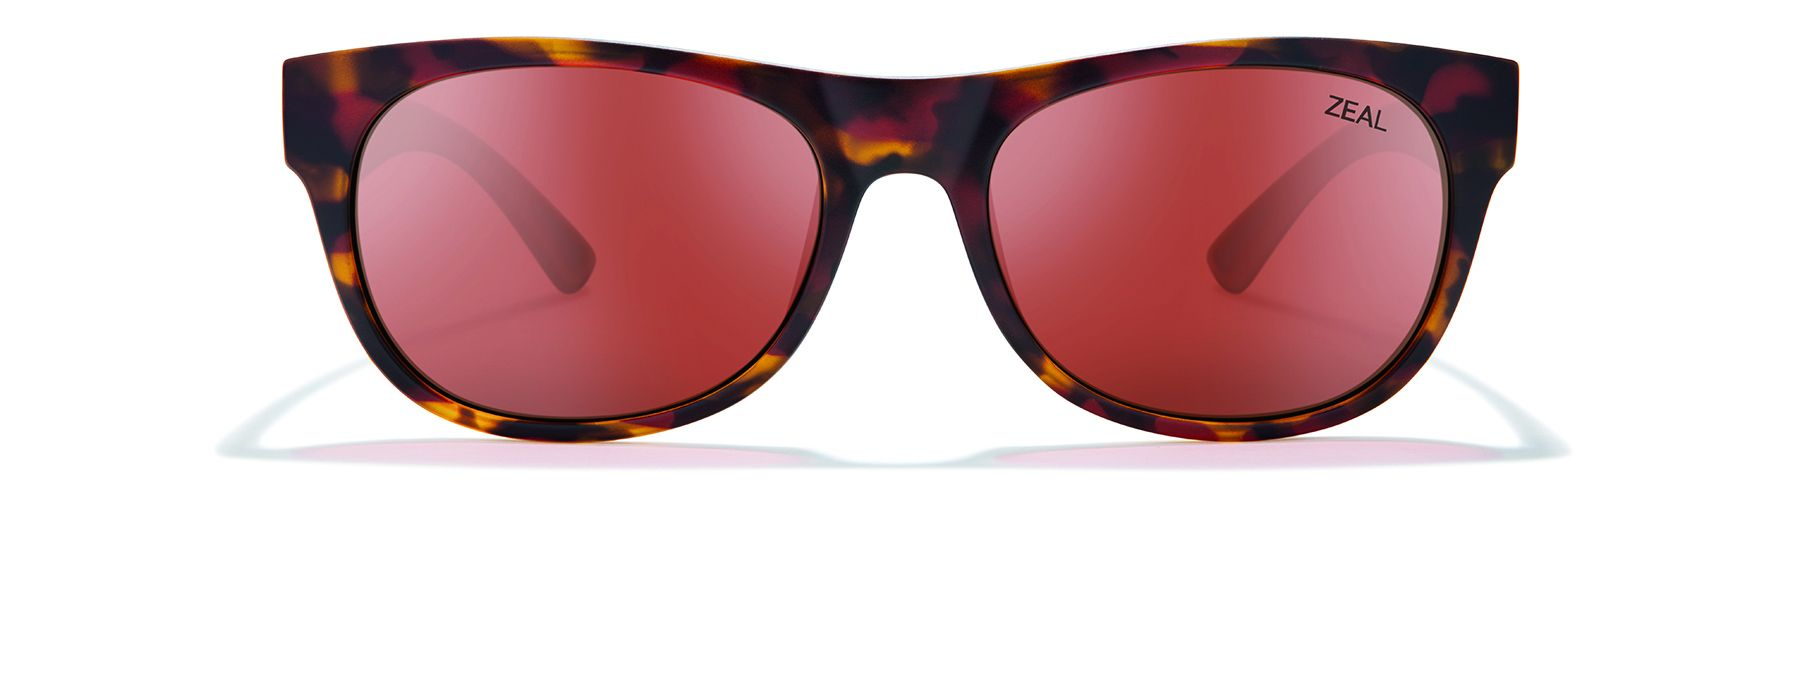 Sierra sunglasses